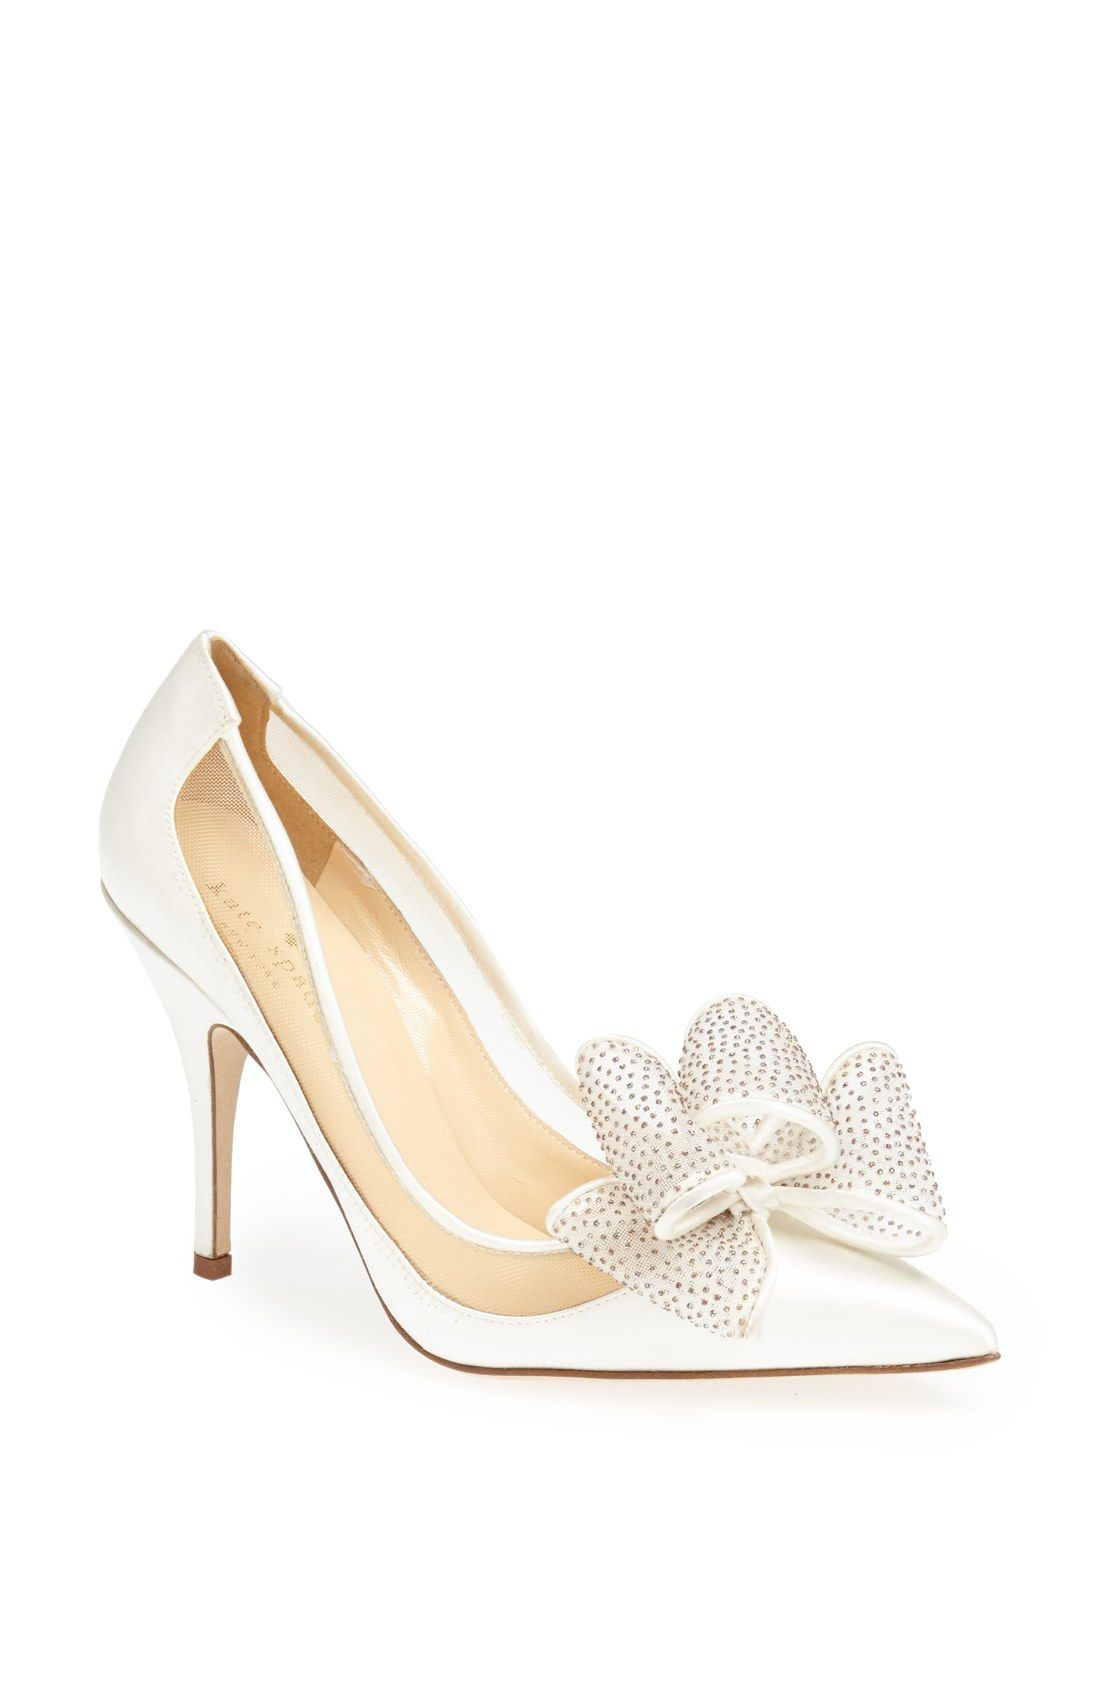 Lovely pointed-toe pump! Wear this white satin Kate Spade bow shoe to a